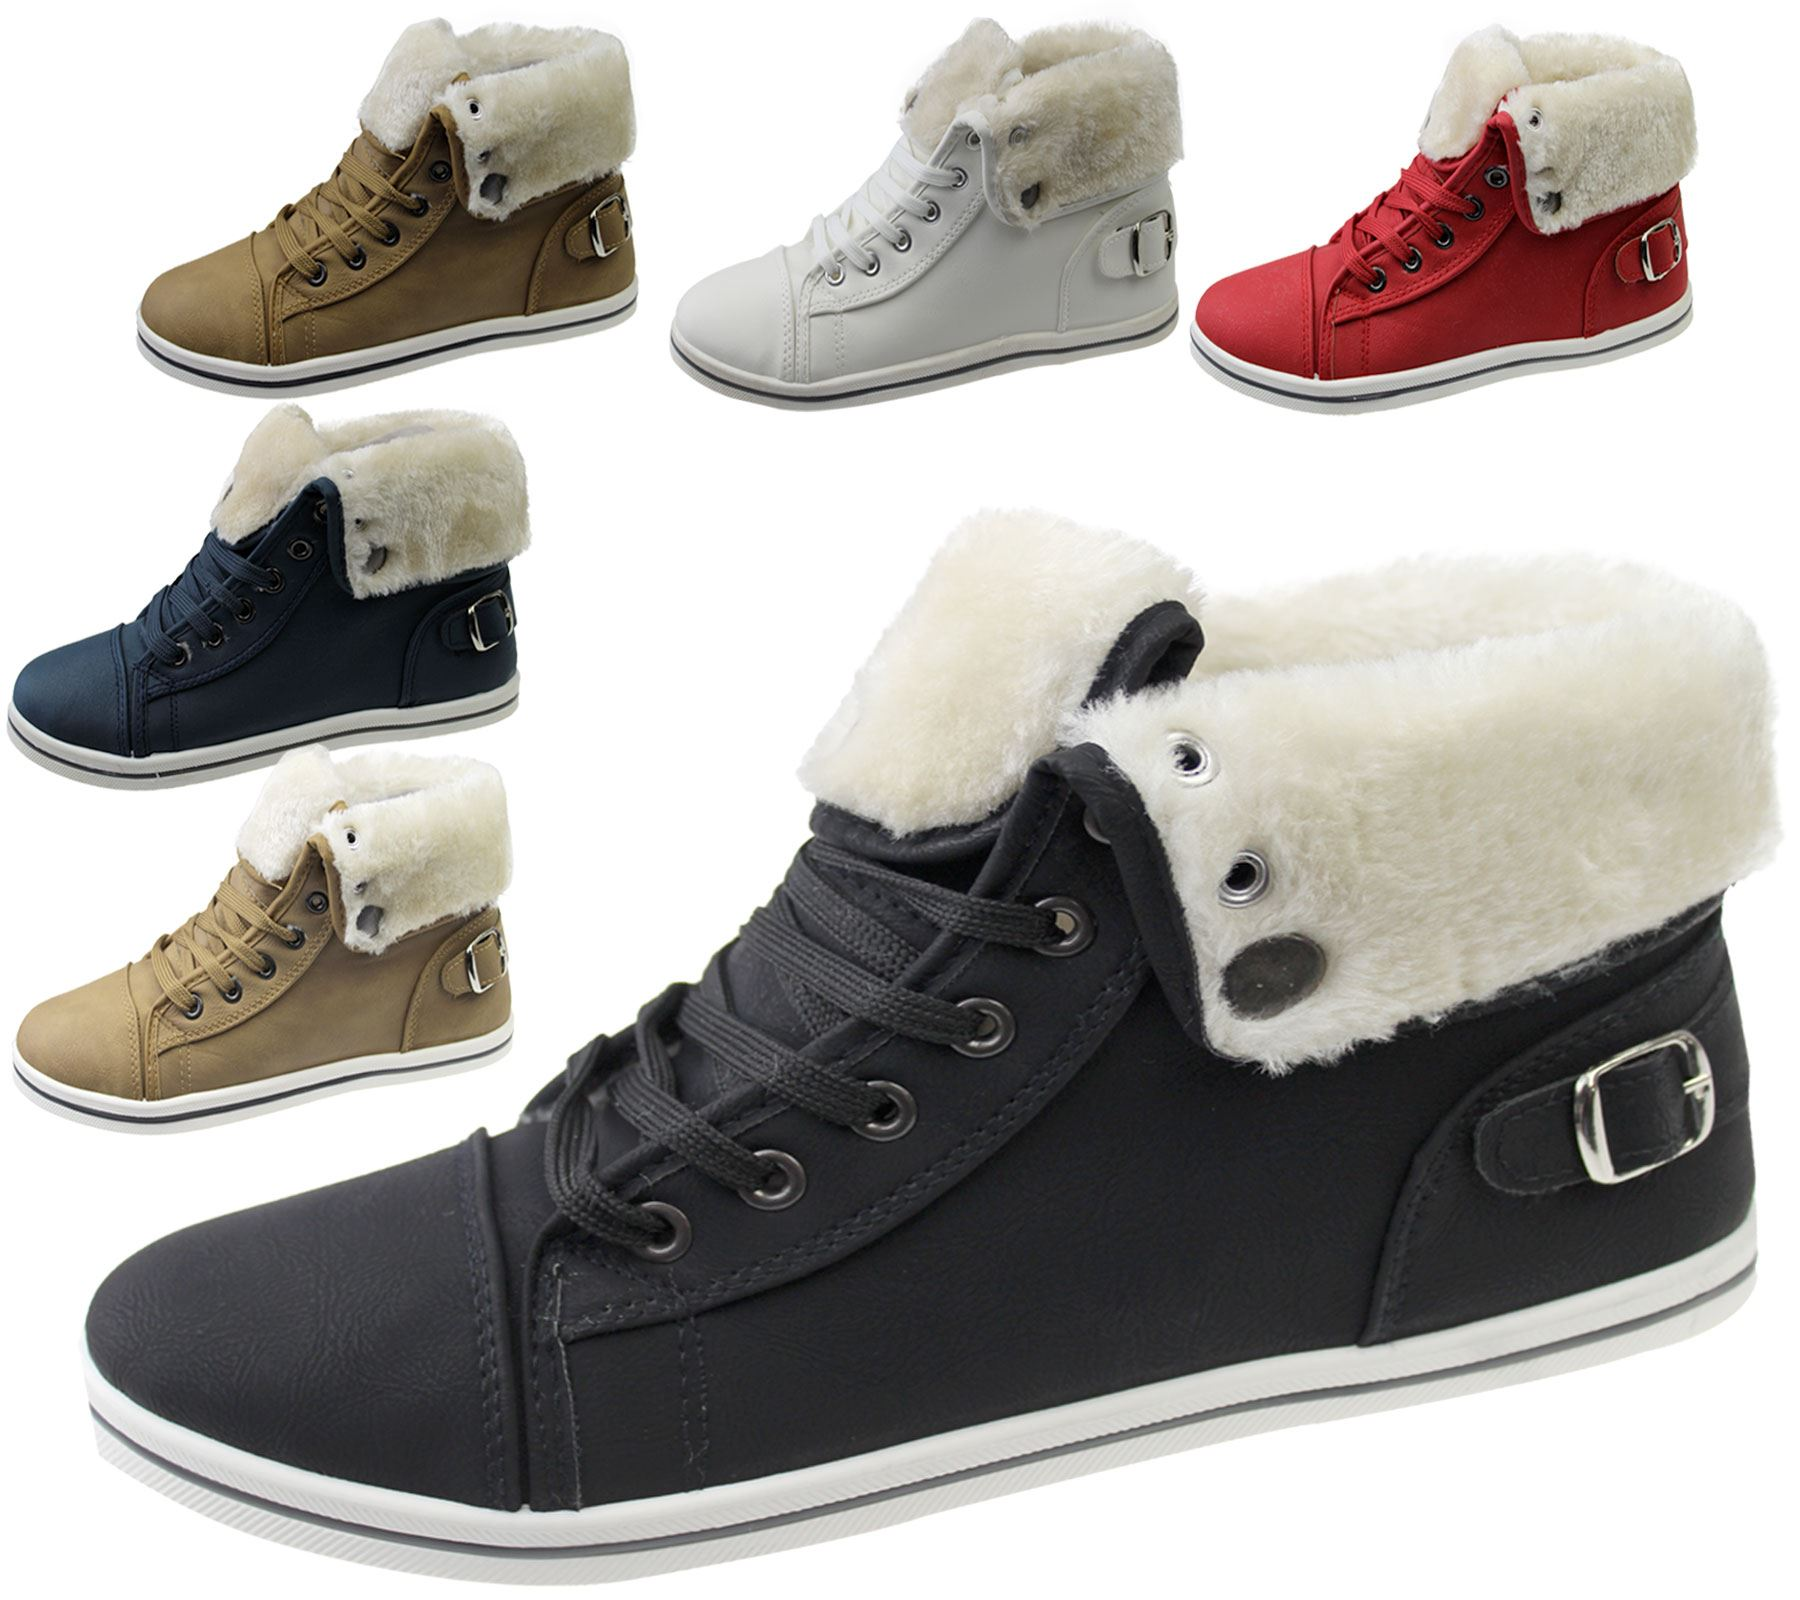 Girls-Boots-Womens-Warm-Lined-High-Top-Ankle-Trainer-Ladies-Winter-Shoes-Size miniatura 65